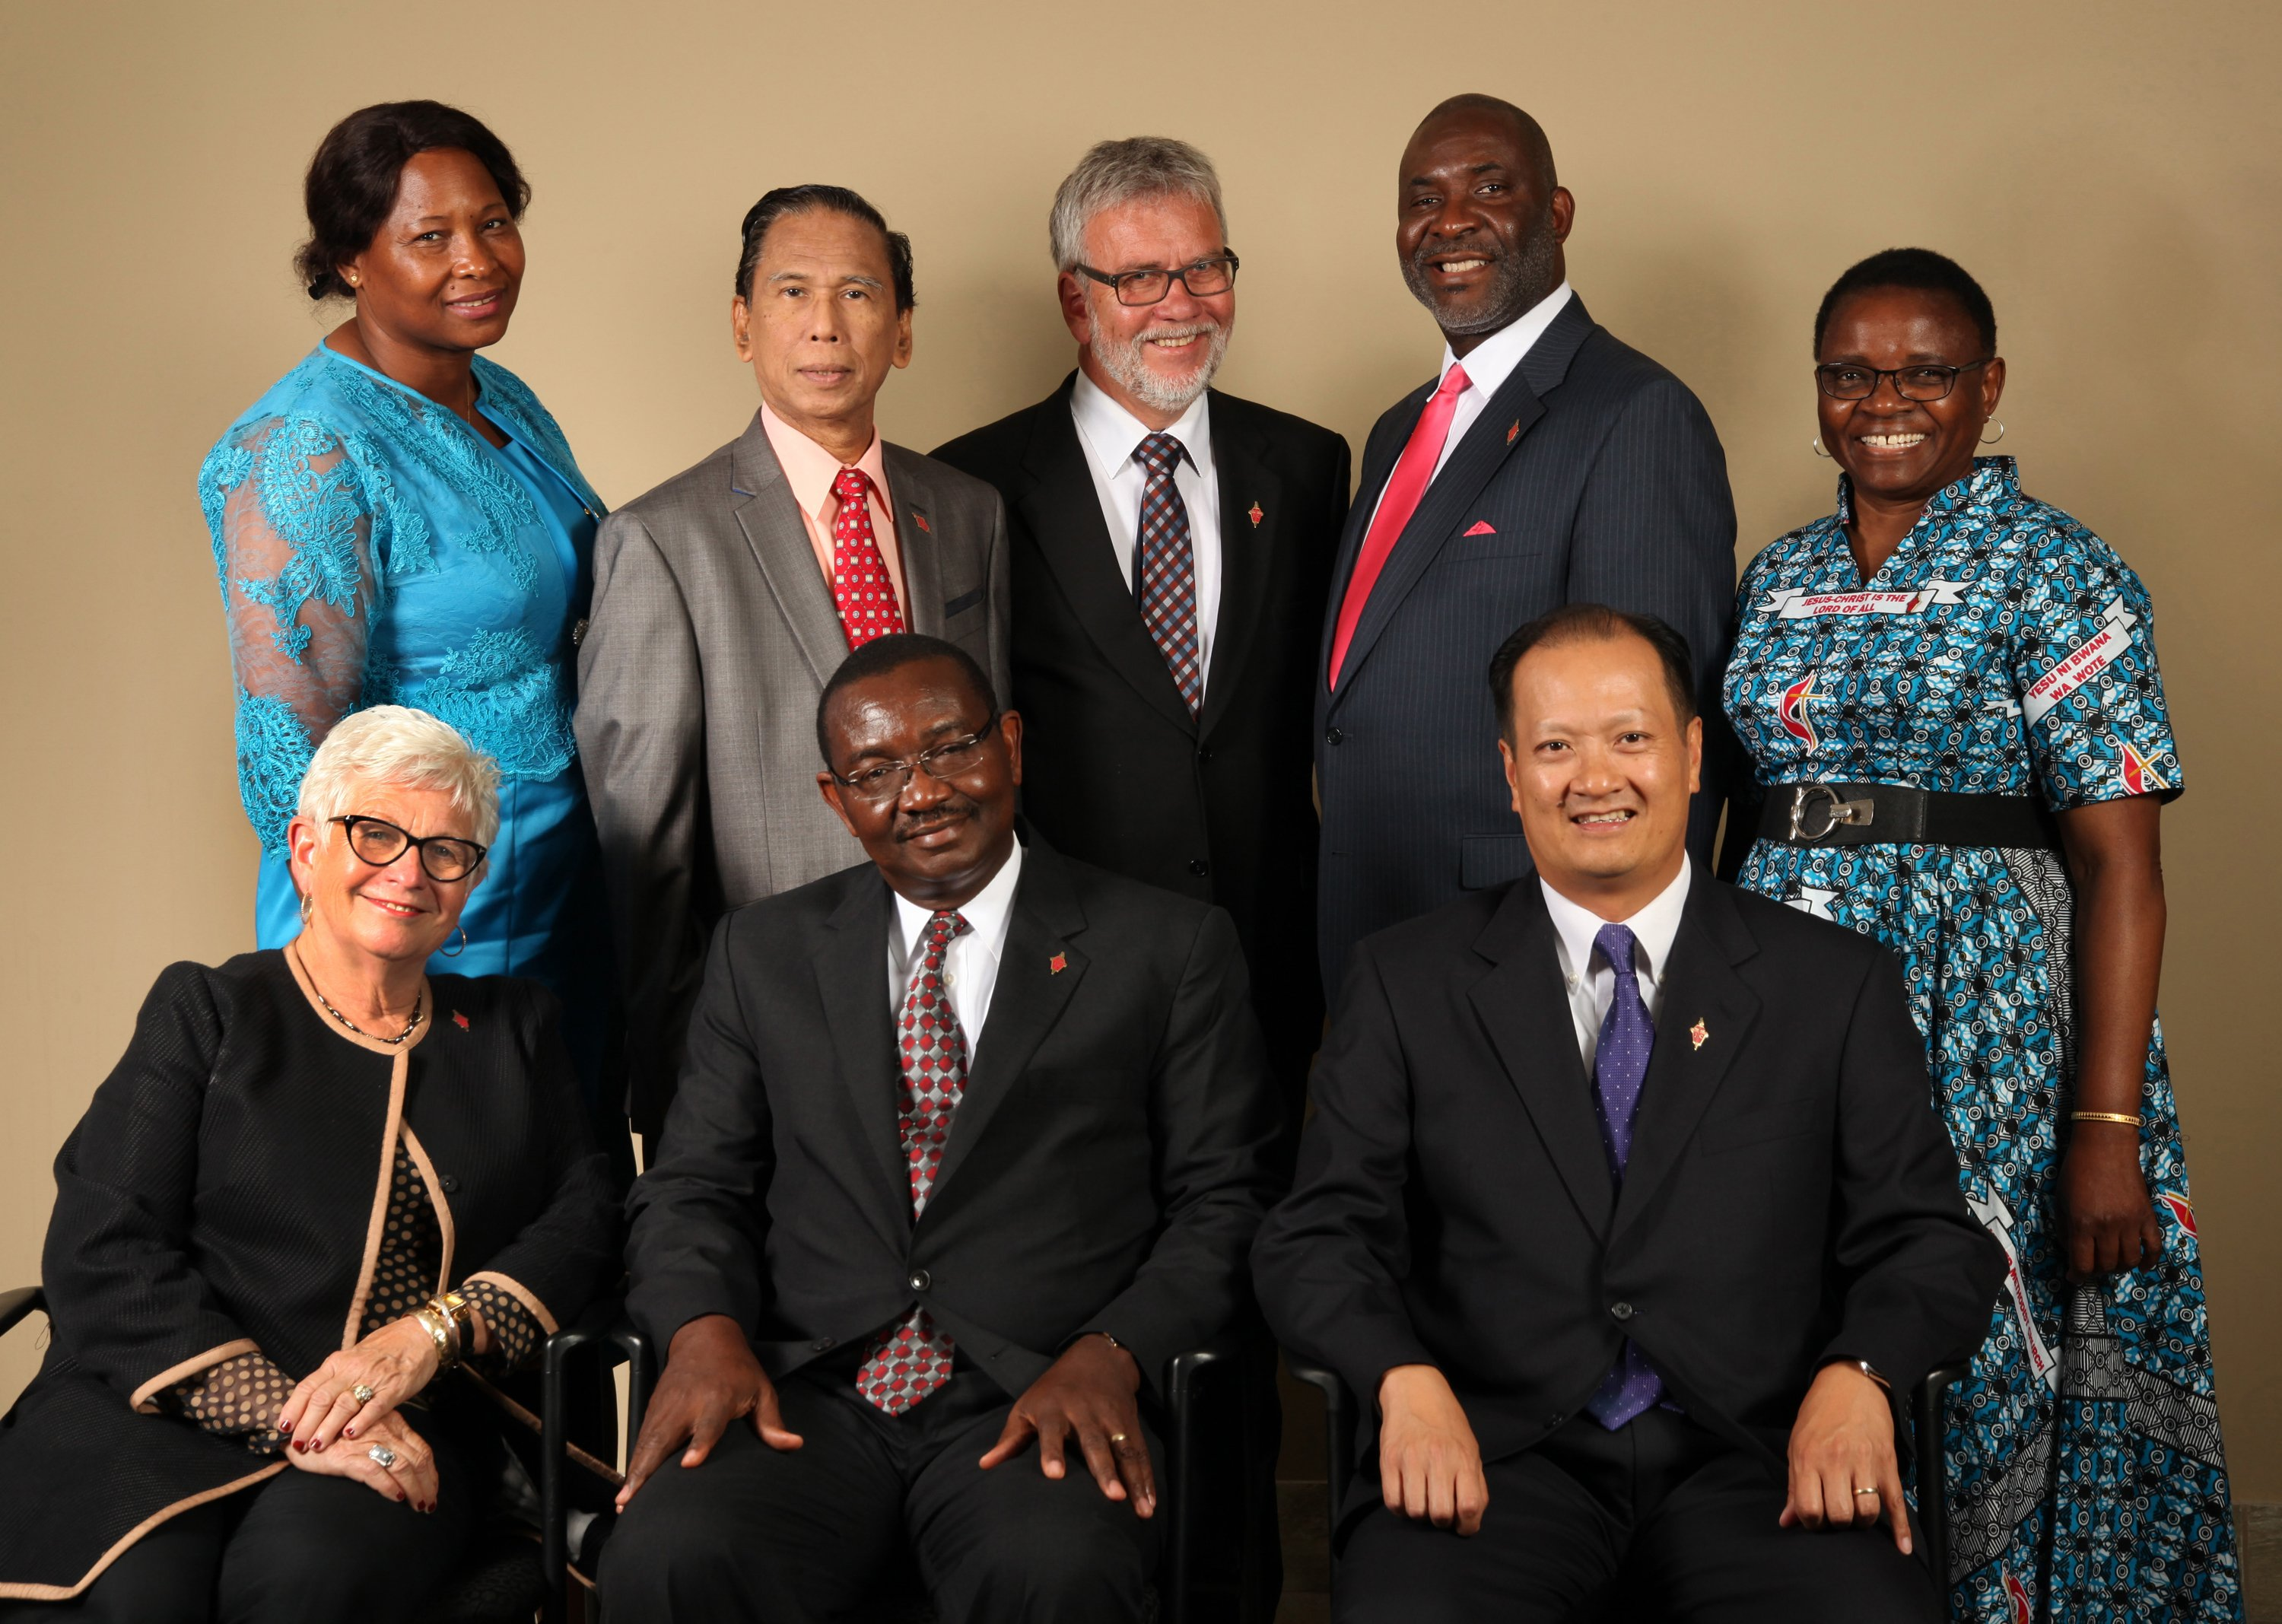 Members of the 2016-2020 Judicial Council. (From left) Front row: Deanell Reece Tacha, N. Oswald Tweh Sr., the Rev. Luan-Vu Tran. Back row: Lydia Romão Gulele, Ruben T. Reyes, the Rev. Øyvind Helliesen, the Rev. Dennis Blackwell, and the Rev. J. Kabamba Kiboko. (Not pictured, Beth Capen)  Photo by Kathleen Barry, United Methodist Communications